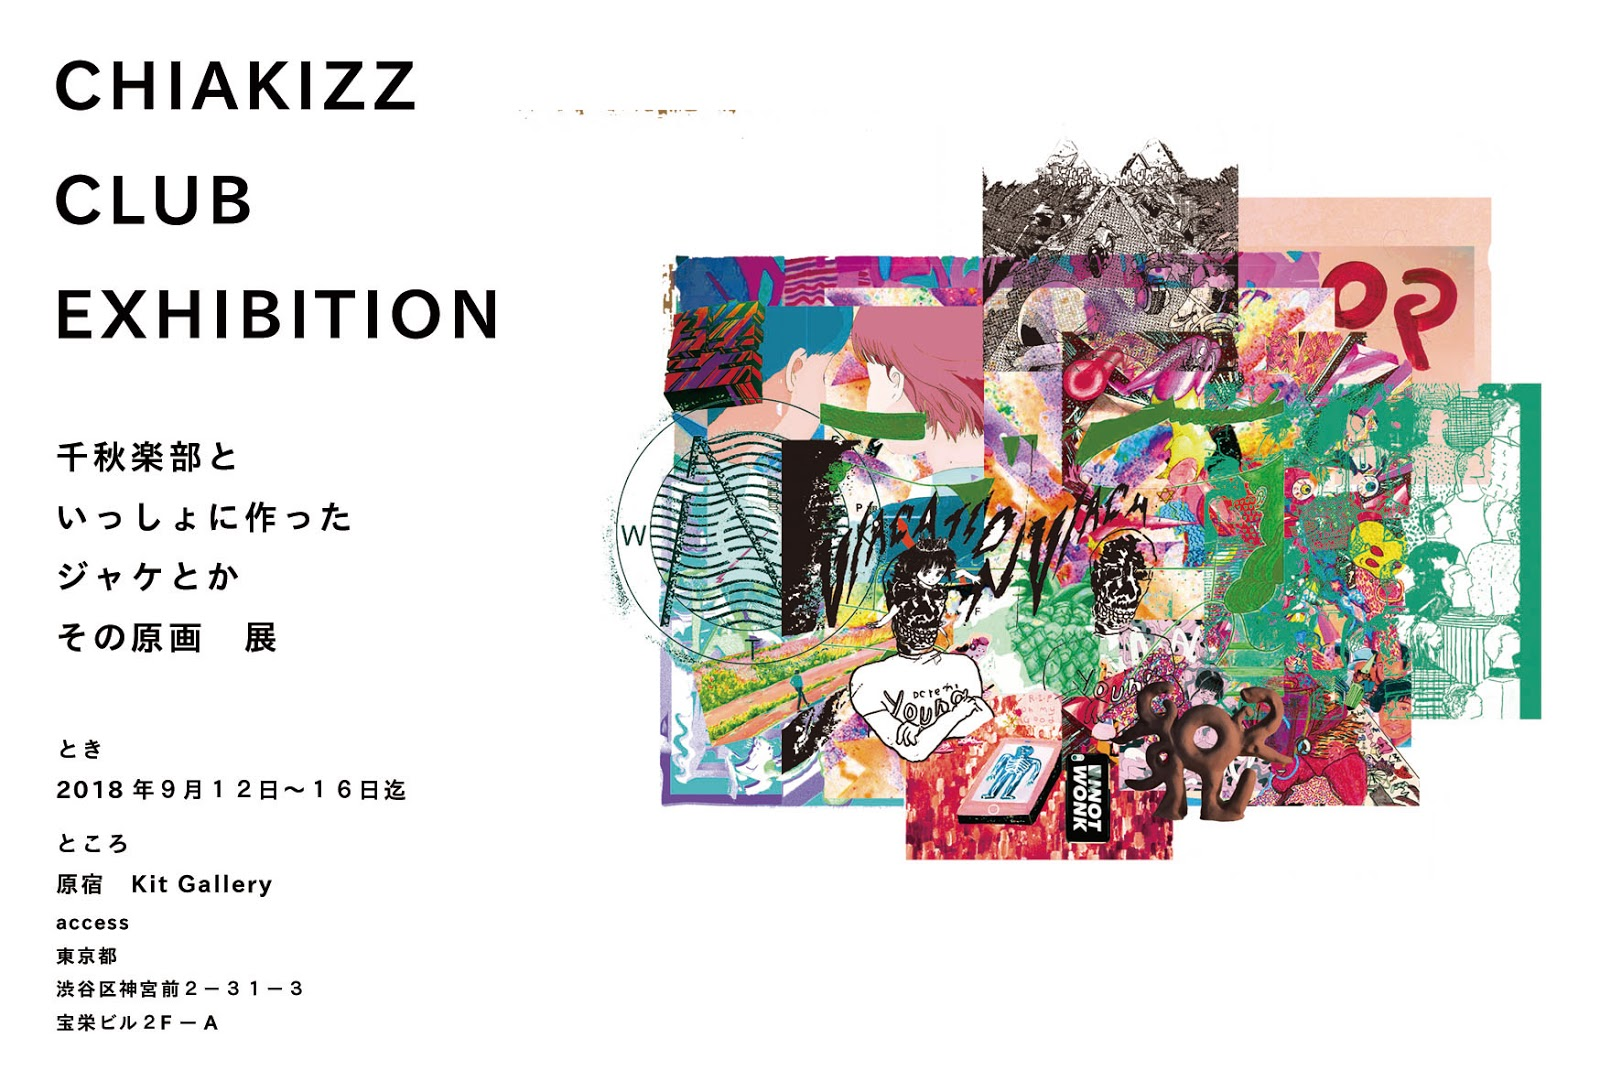 http://kit-gallery.com/schedule/files/KIZZPOSTCARD.jpg